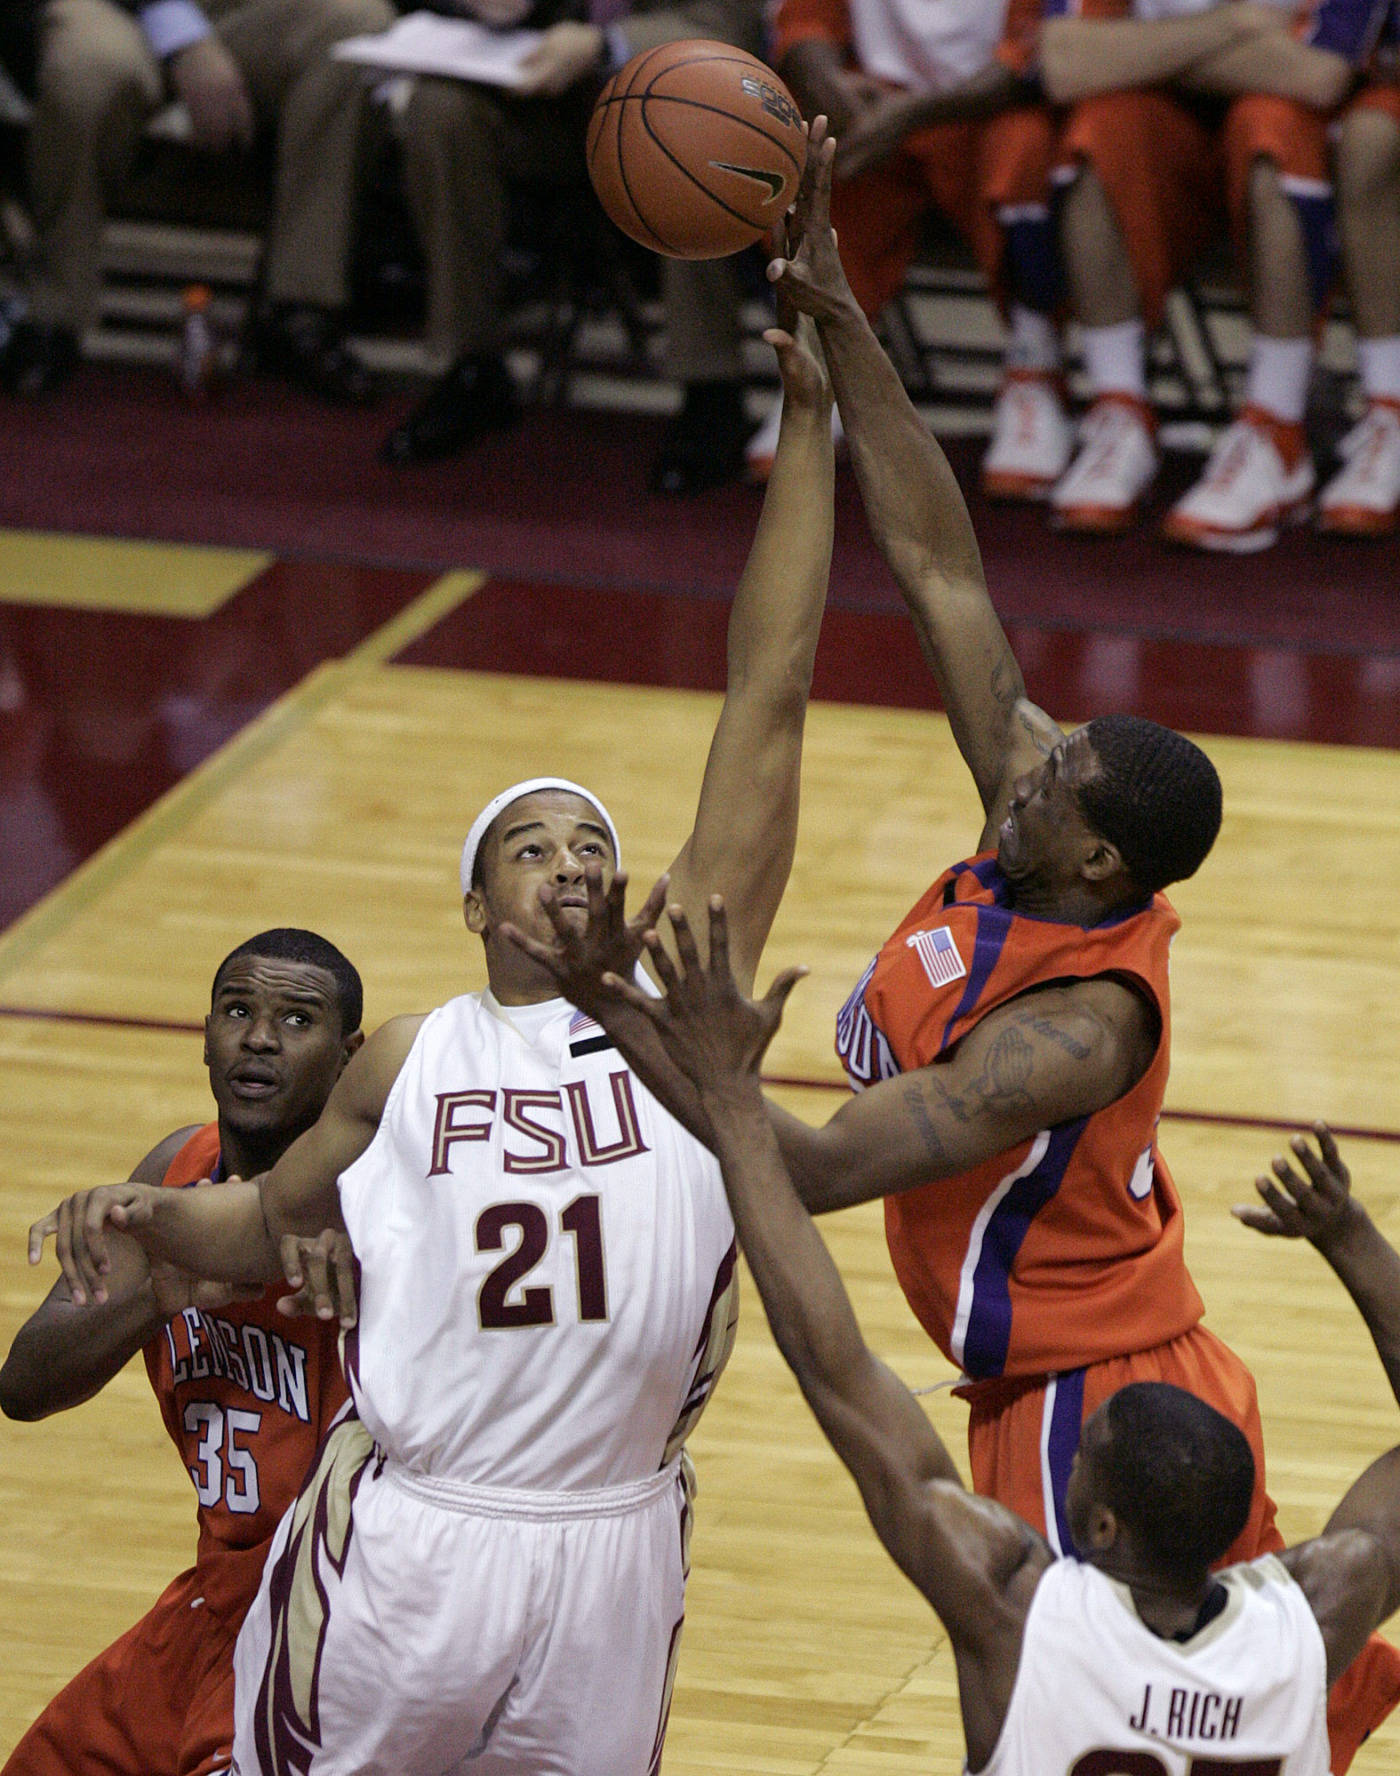 Clemson's Trevor Booker gets a shot off against Florida State's Julian Vaughn in the second half of a basketball game which the Seminoles won 64-55 on Tuesday, Feb. 19, 2008, in Tallahassee, Fla. (AP Photo/Steve Cannon)